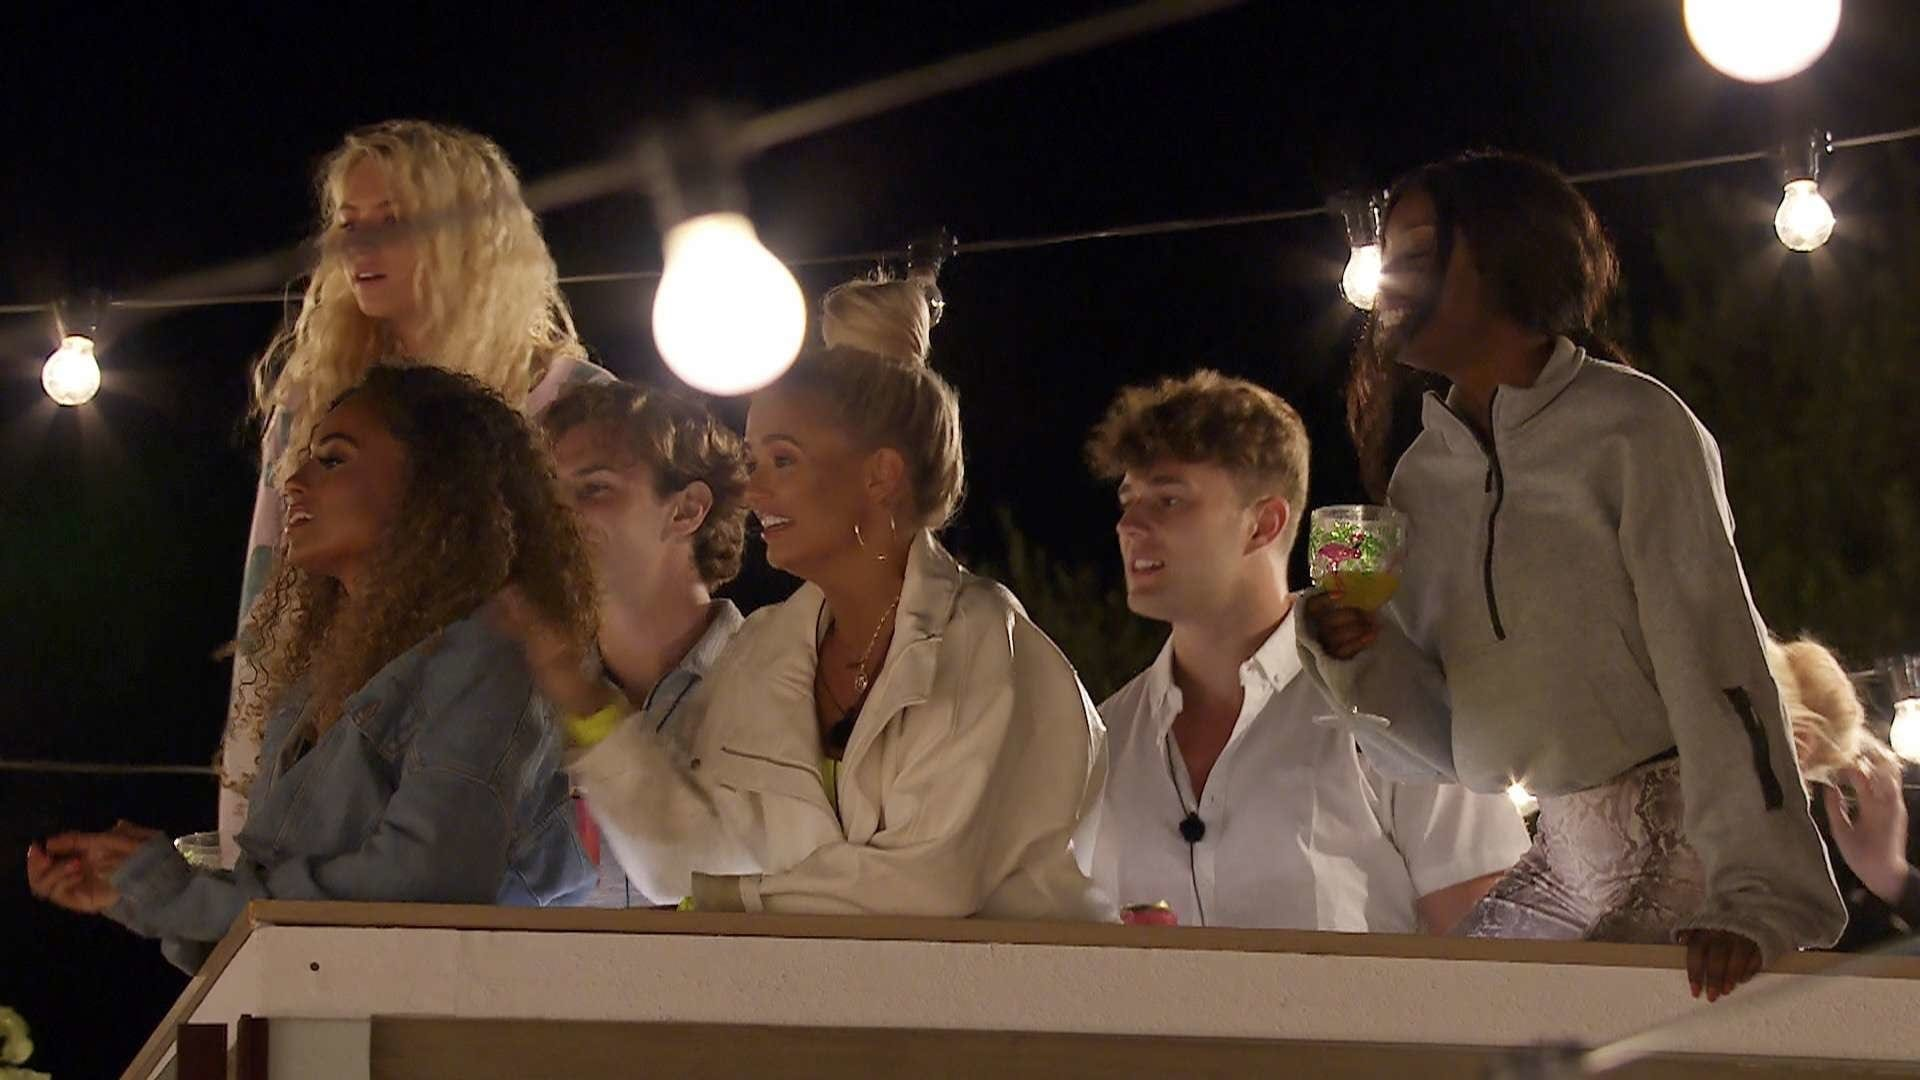 Love Island Season 5 Episode 15